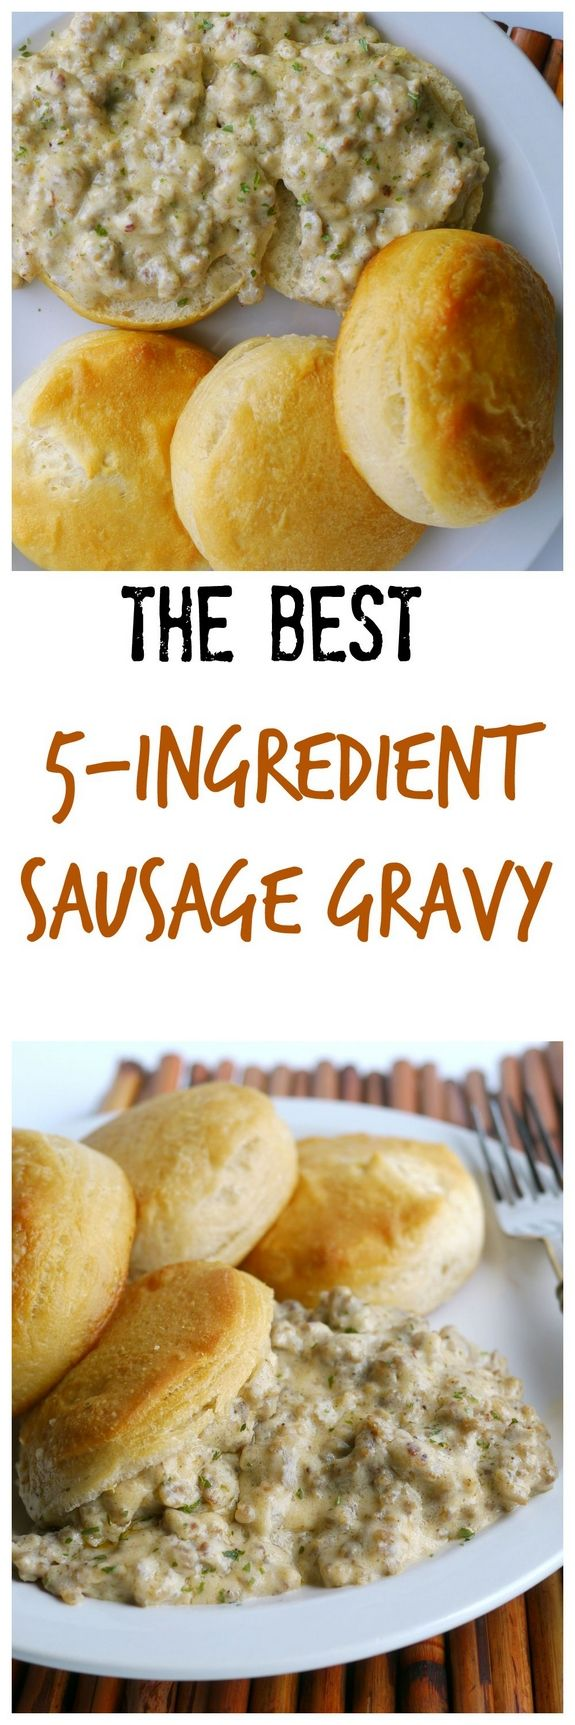 The Best 5-Ingredient Sausage Gravy from NoblePig.com is the perfect comfort food. Brought to you by No Yolks.